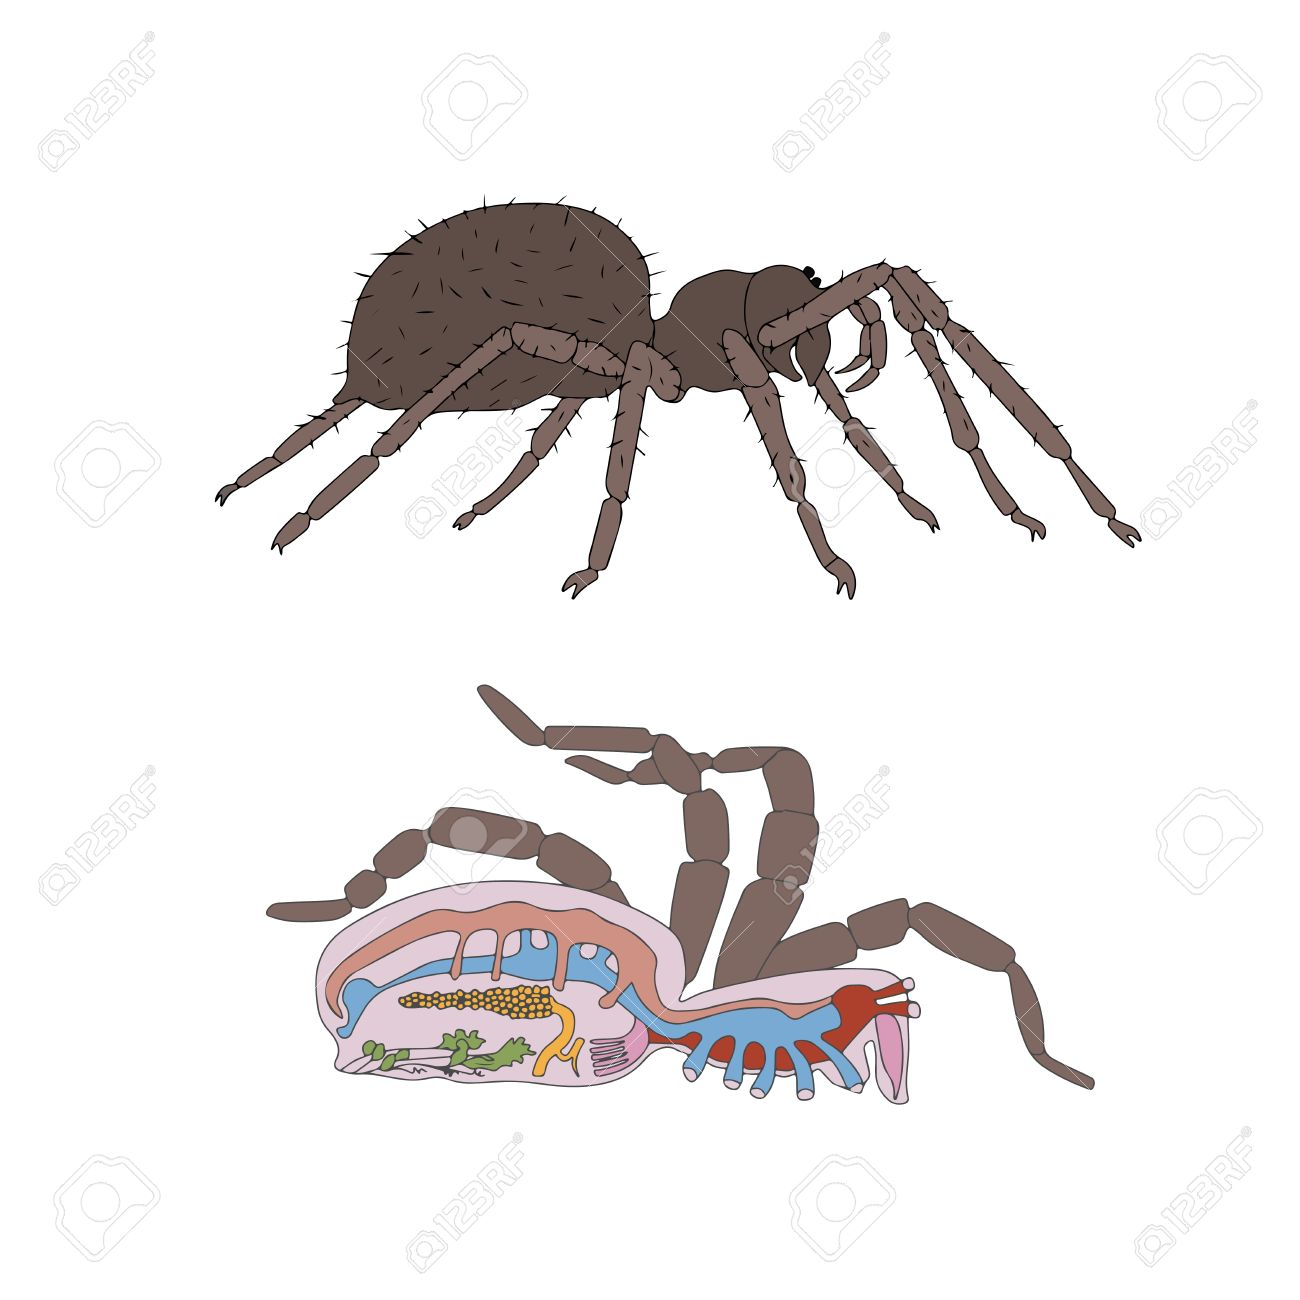 Zoology, Anatomy, Morphology, Cross-section Of Spider Royalty Free ...